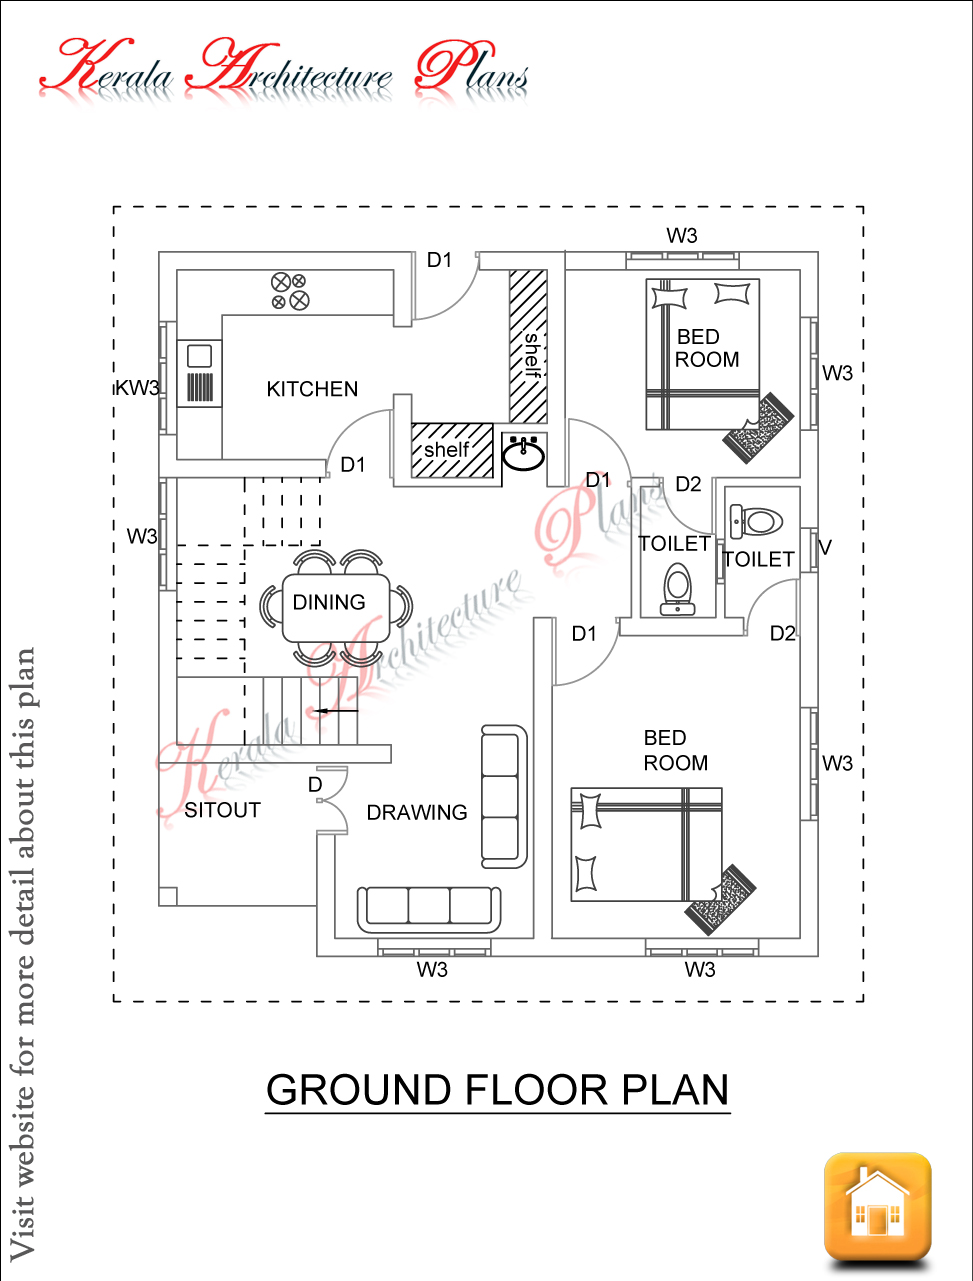 1600 square feet four bed room house plan architecture Ground floor 3 bedroom plans